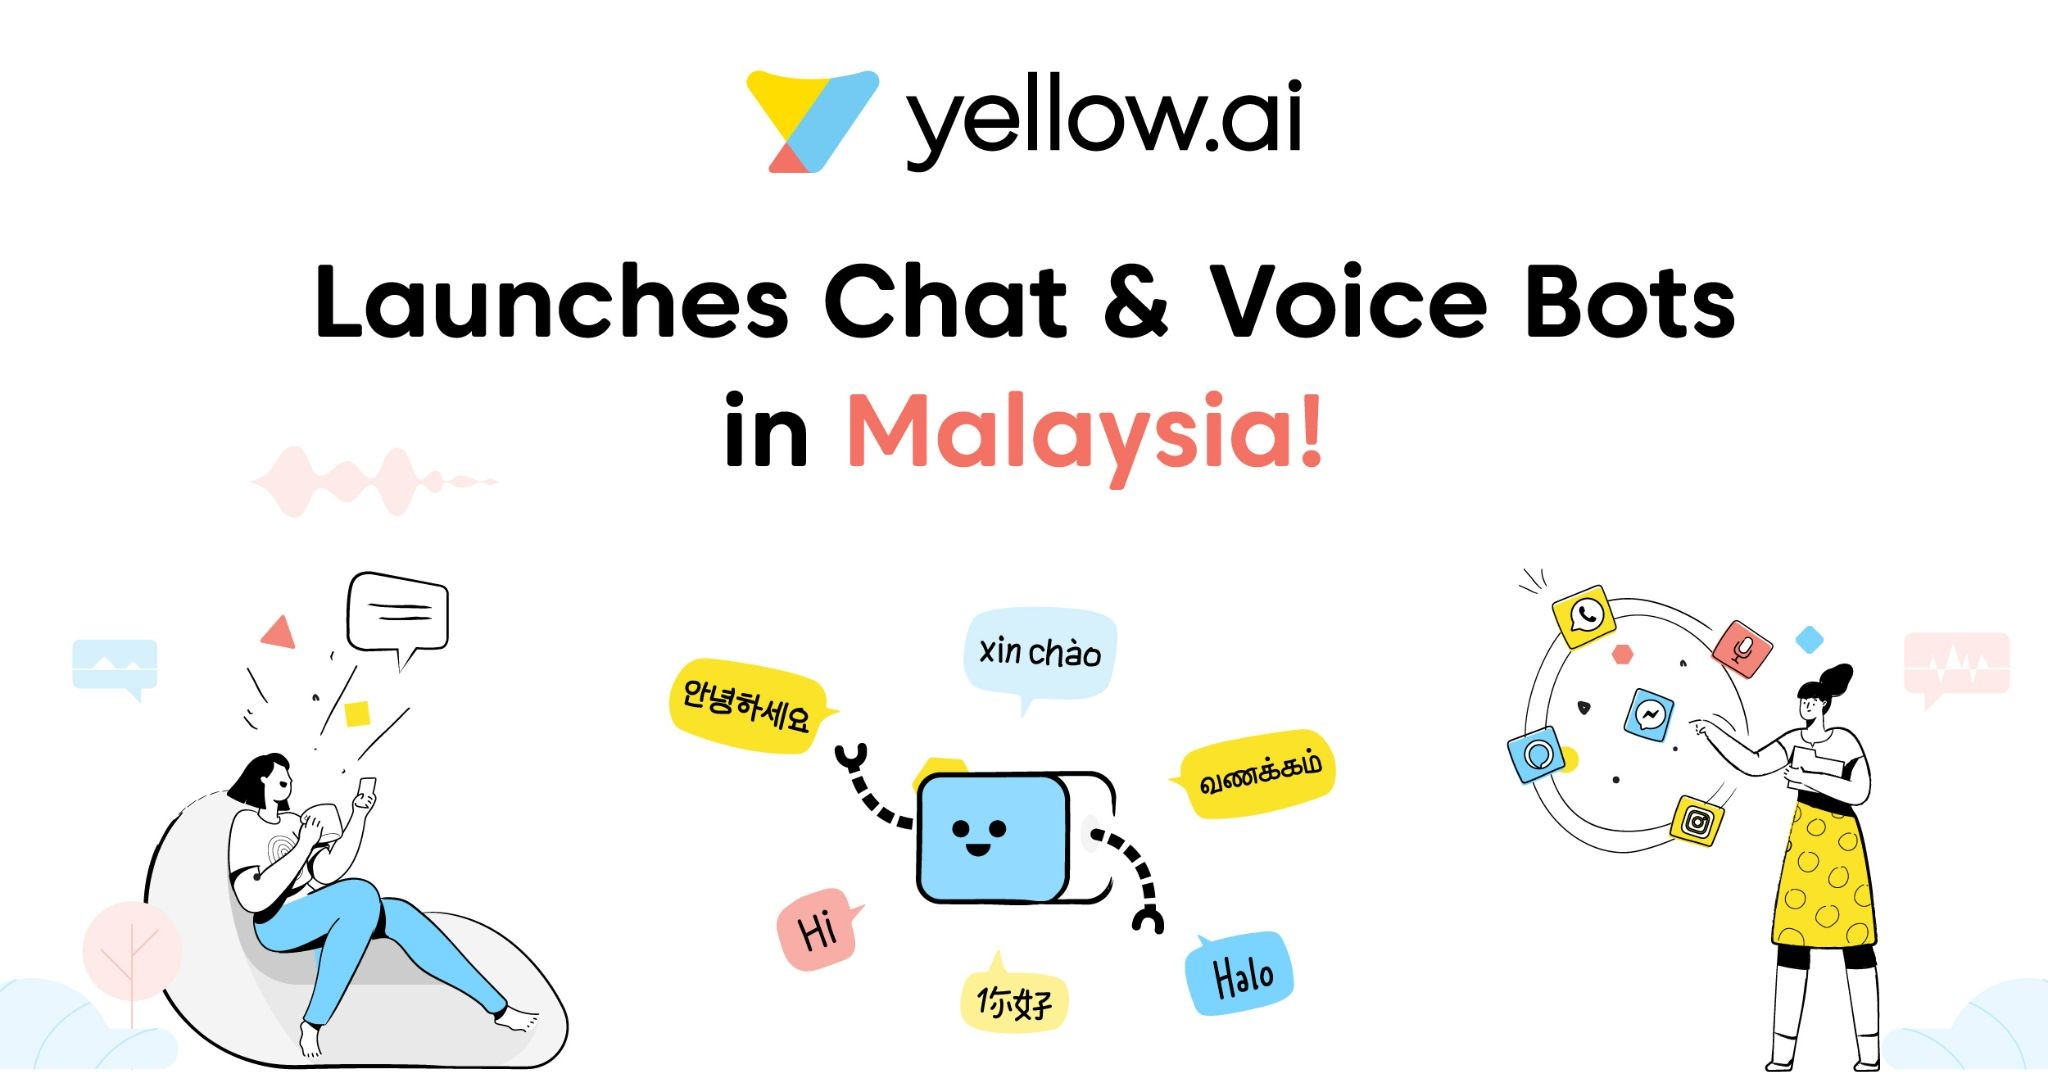 yellow.ai Launches AI Bots and Chat in Malaysia